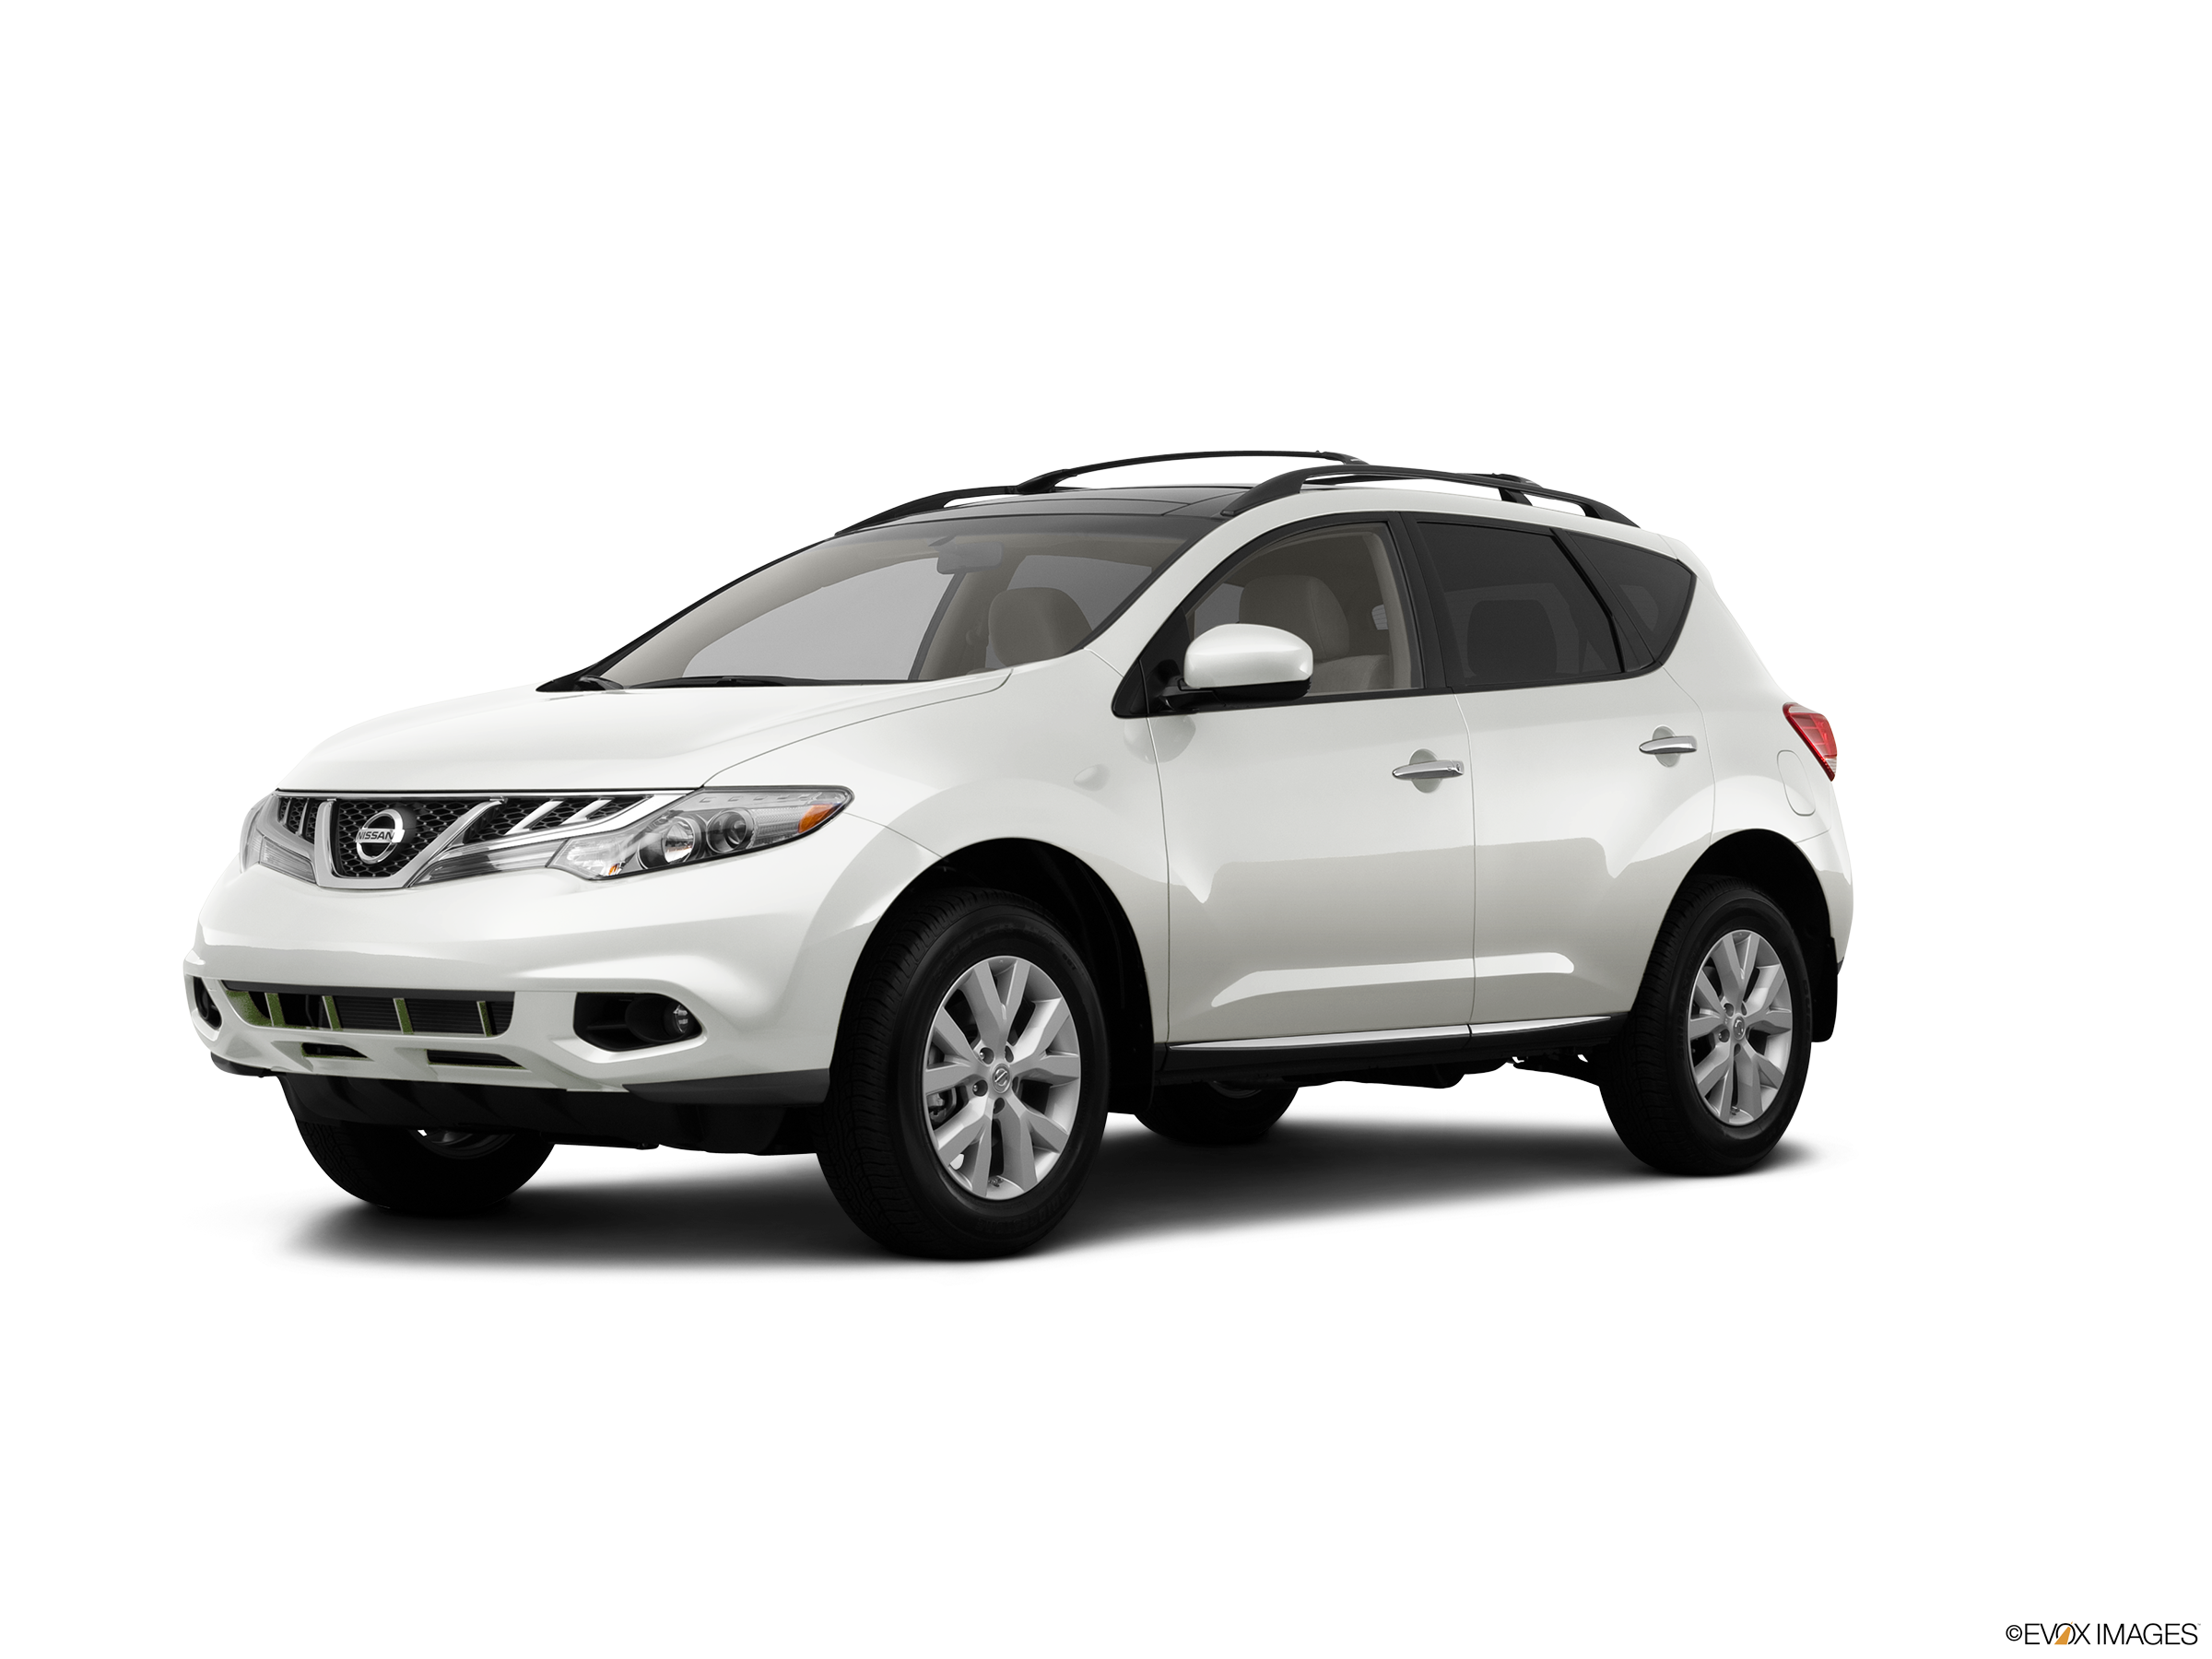 2012 Nissan Murano Values Cars For Sale Kelley Blue Book